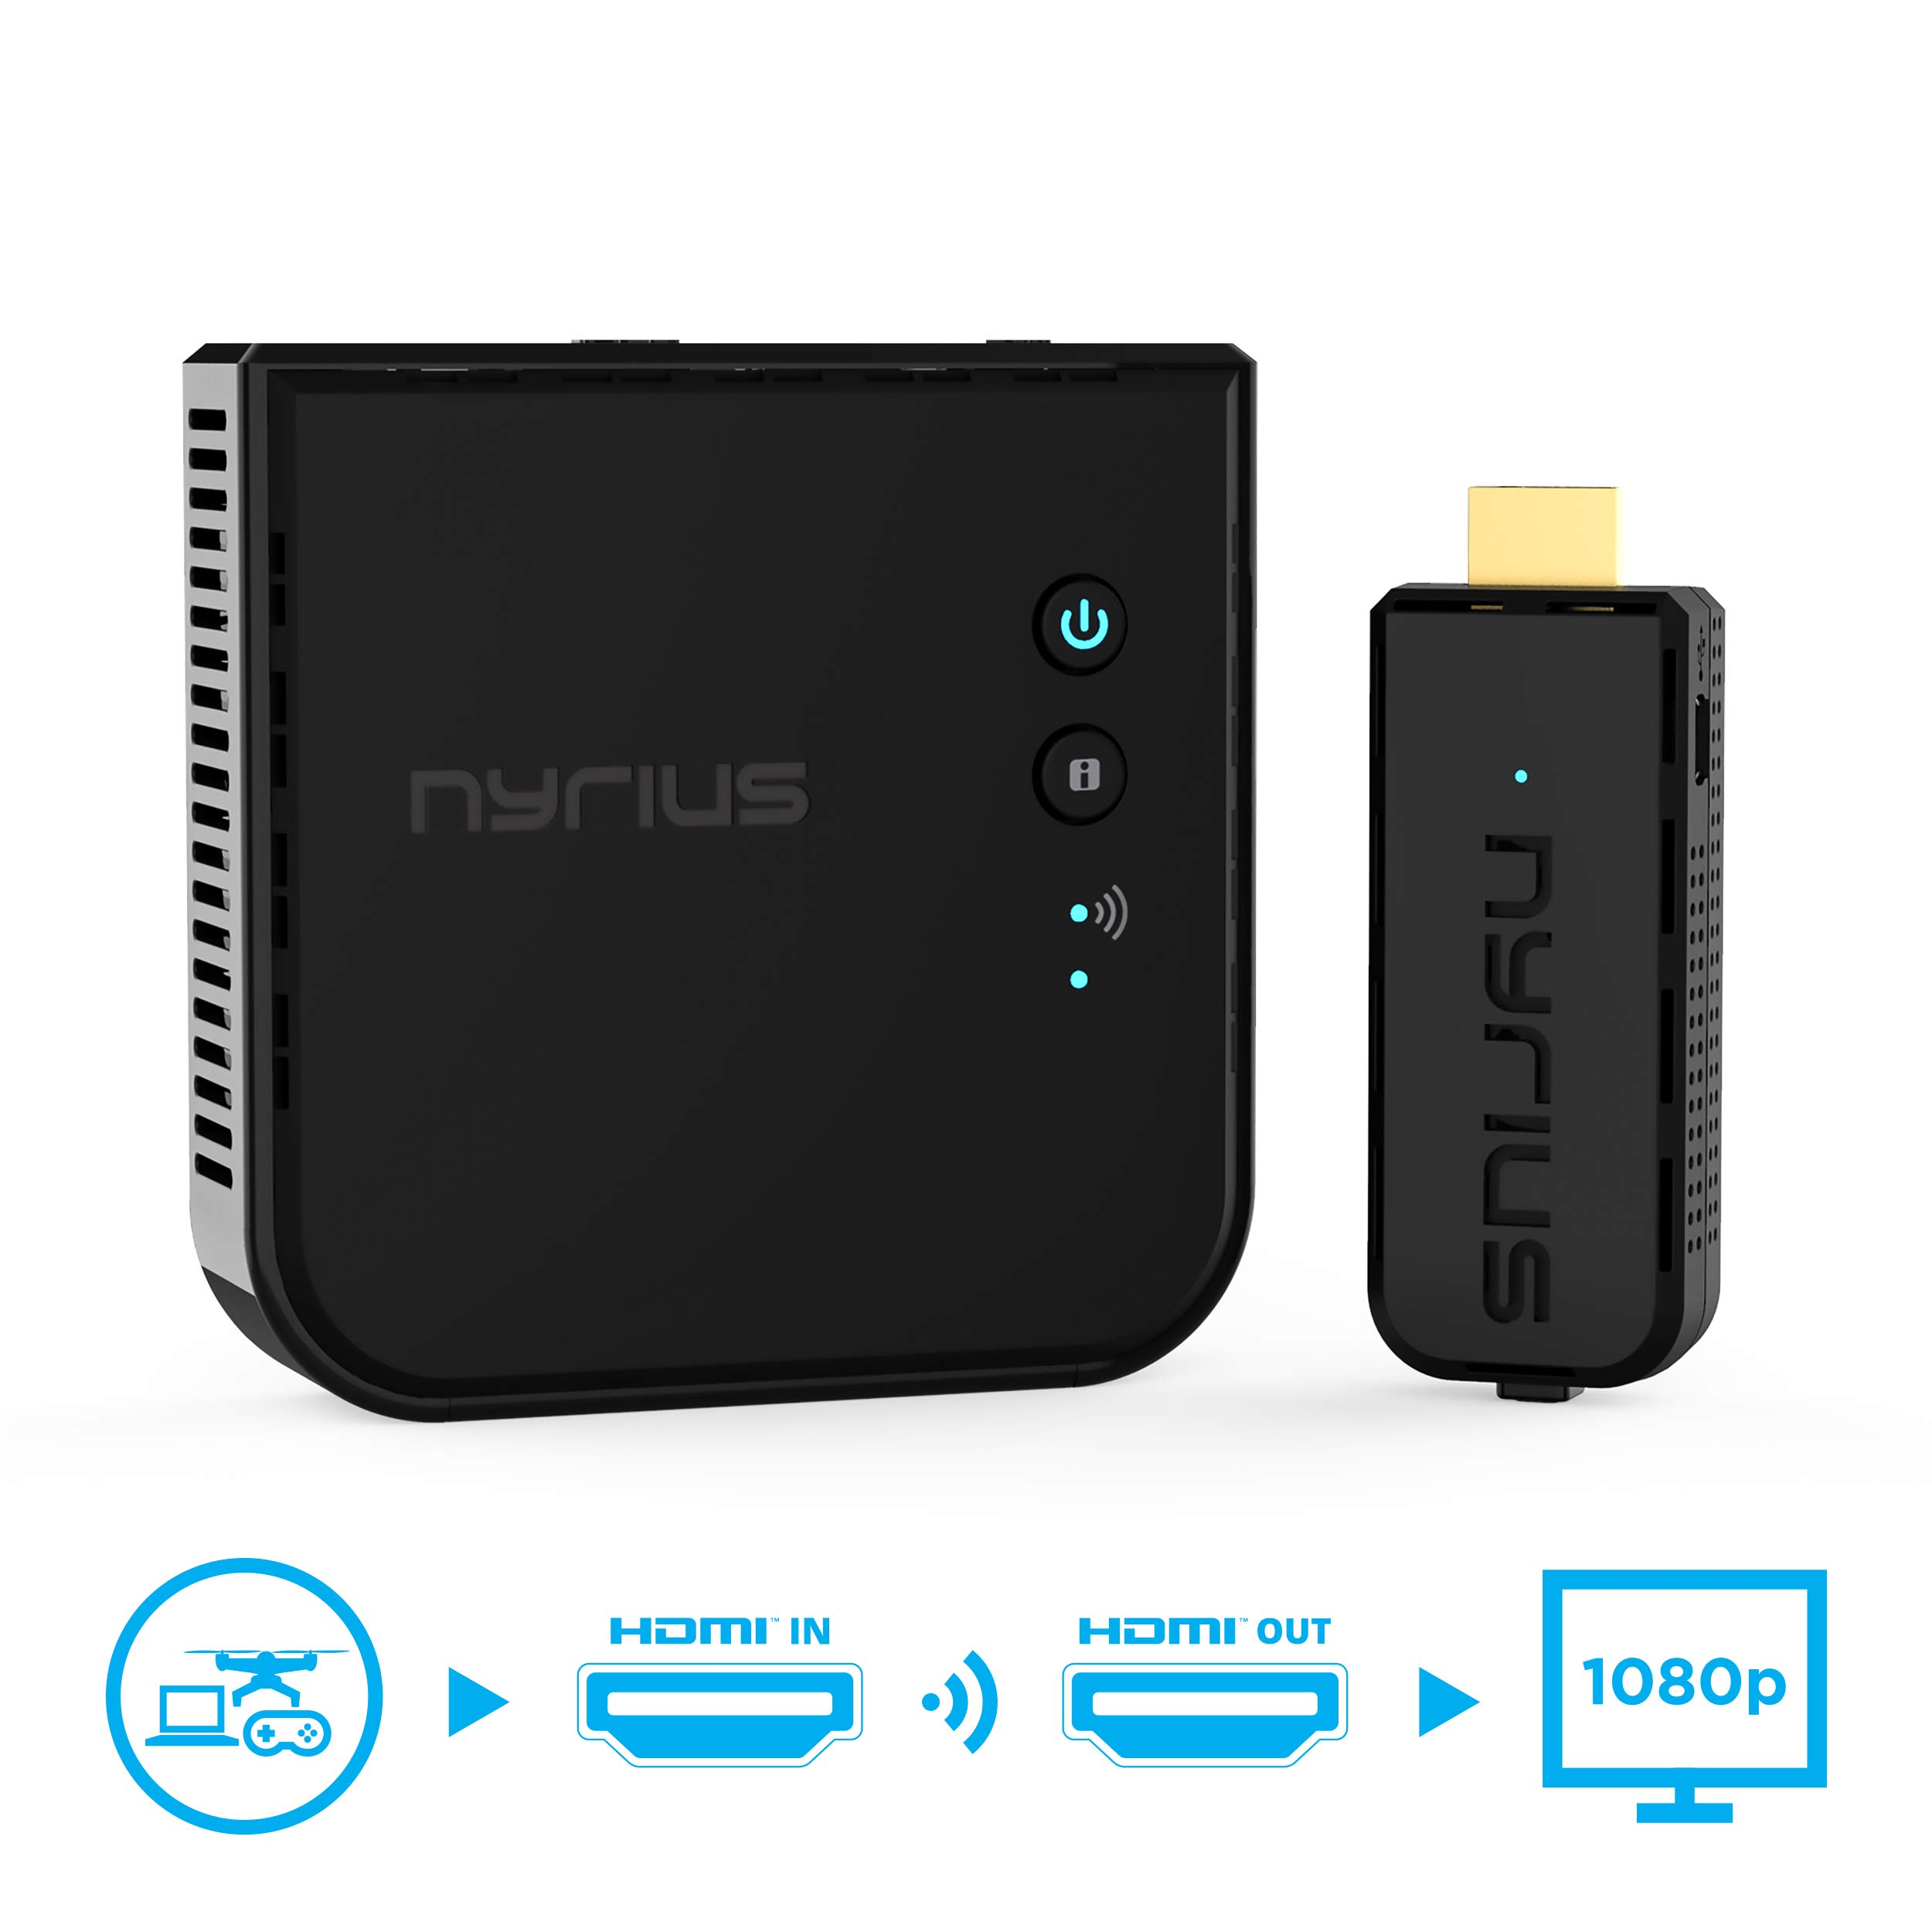 Nyrius Aries Prime Wireless Video HDMI Transmitter & Receiver for Streaming HD 1080p 3D Video & Digital Audio from Laptop, PC, Cable, Netflix, YouTube, PS4, Xbox One to HDTV/Projector (NPCS549) by Nyrius